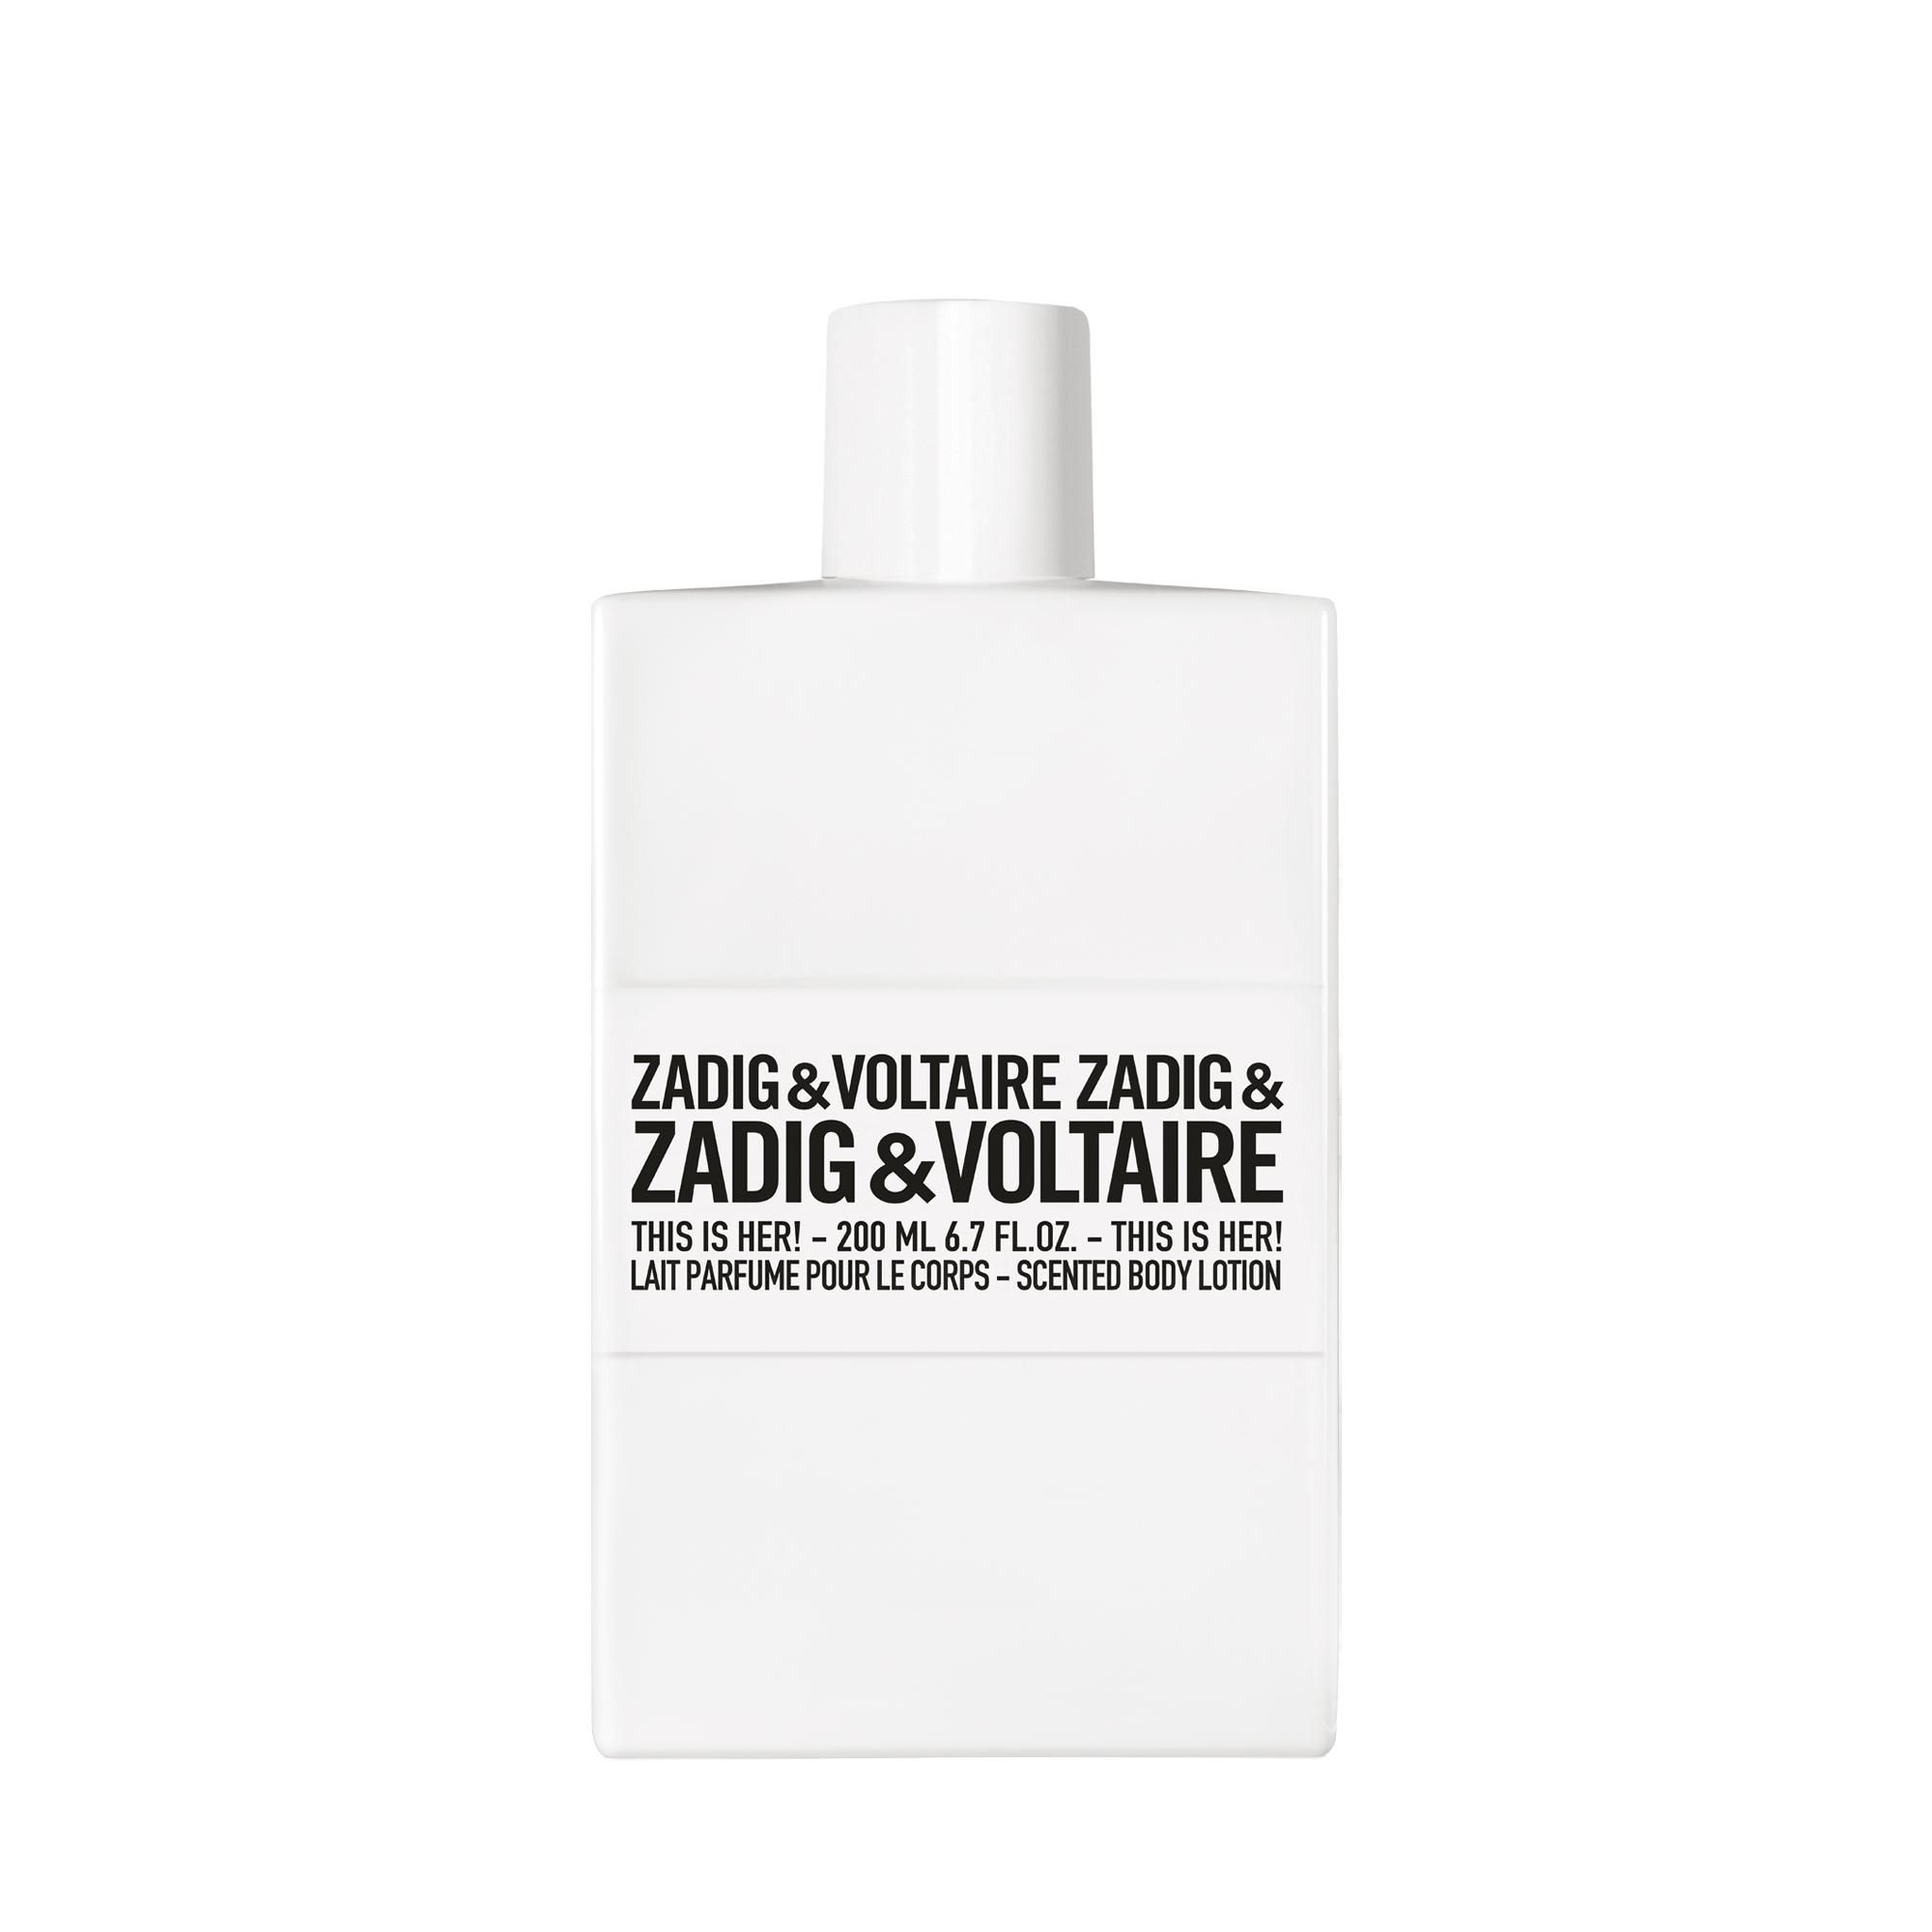 zadig voltaire this is her perfume sale uk compare prices best deals. Black Bedroom Furniture Sets. Home Design Ideas